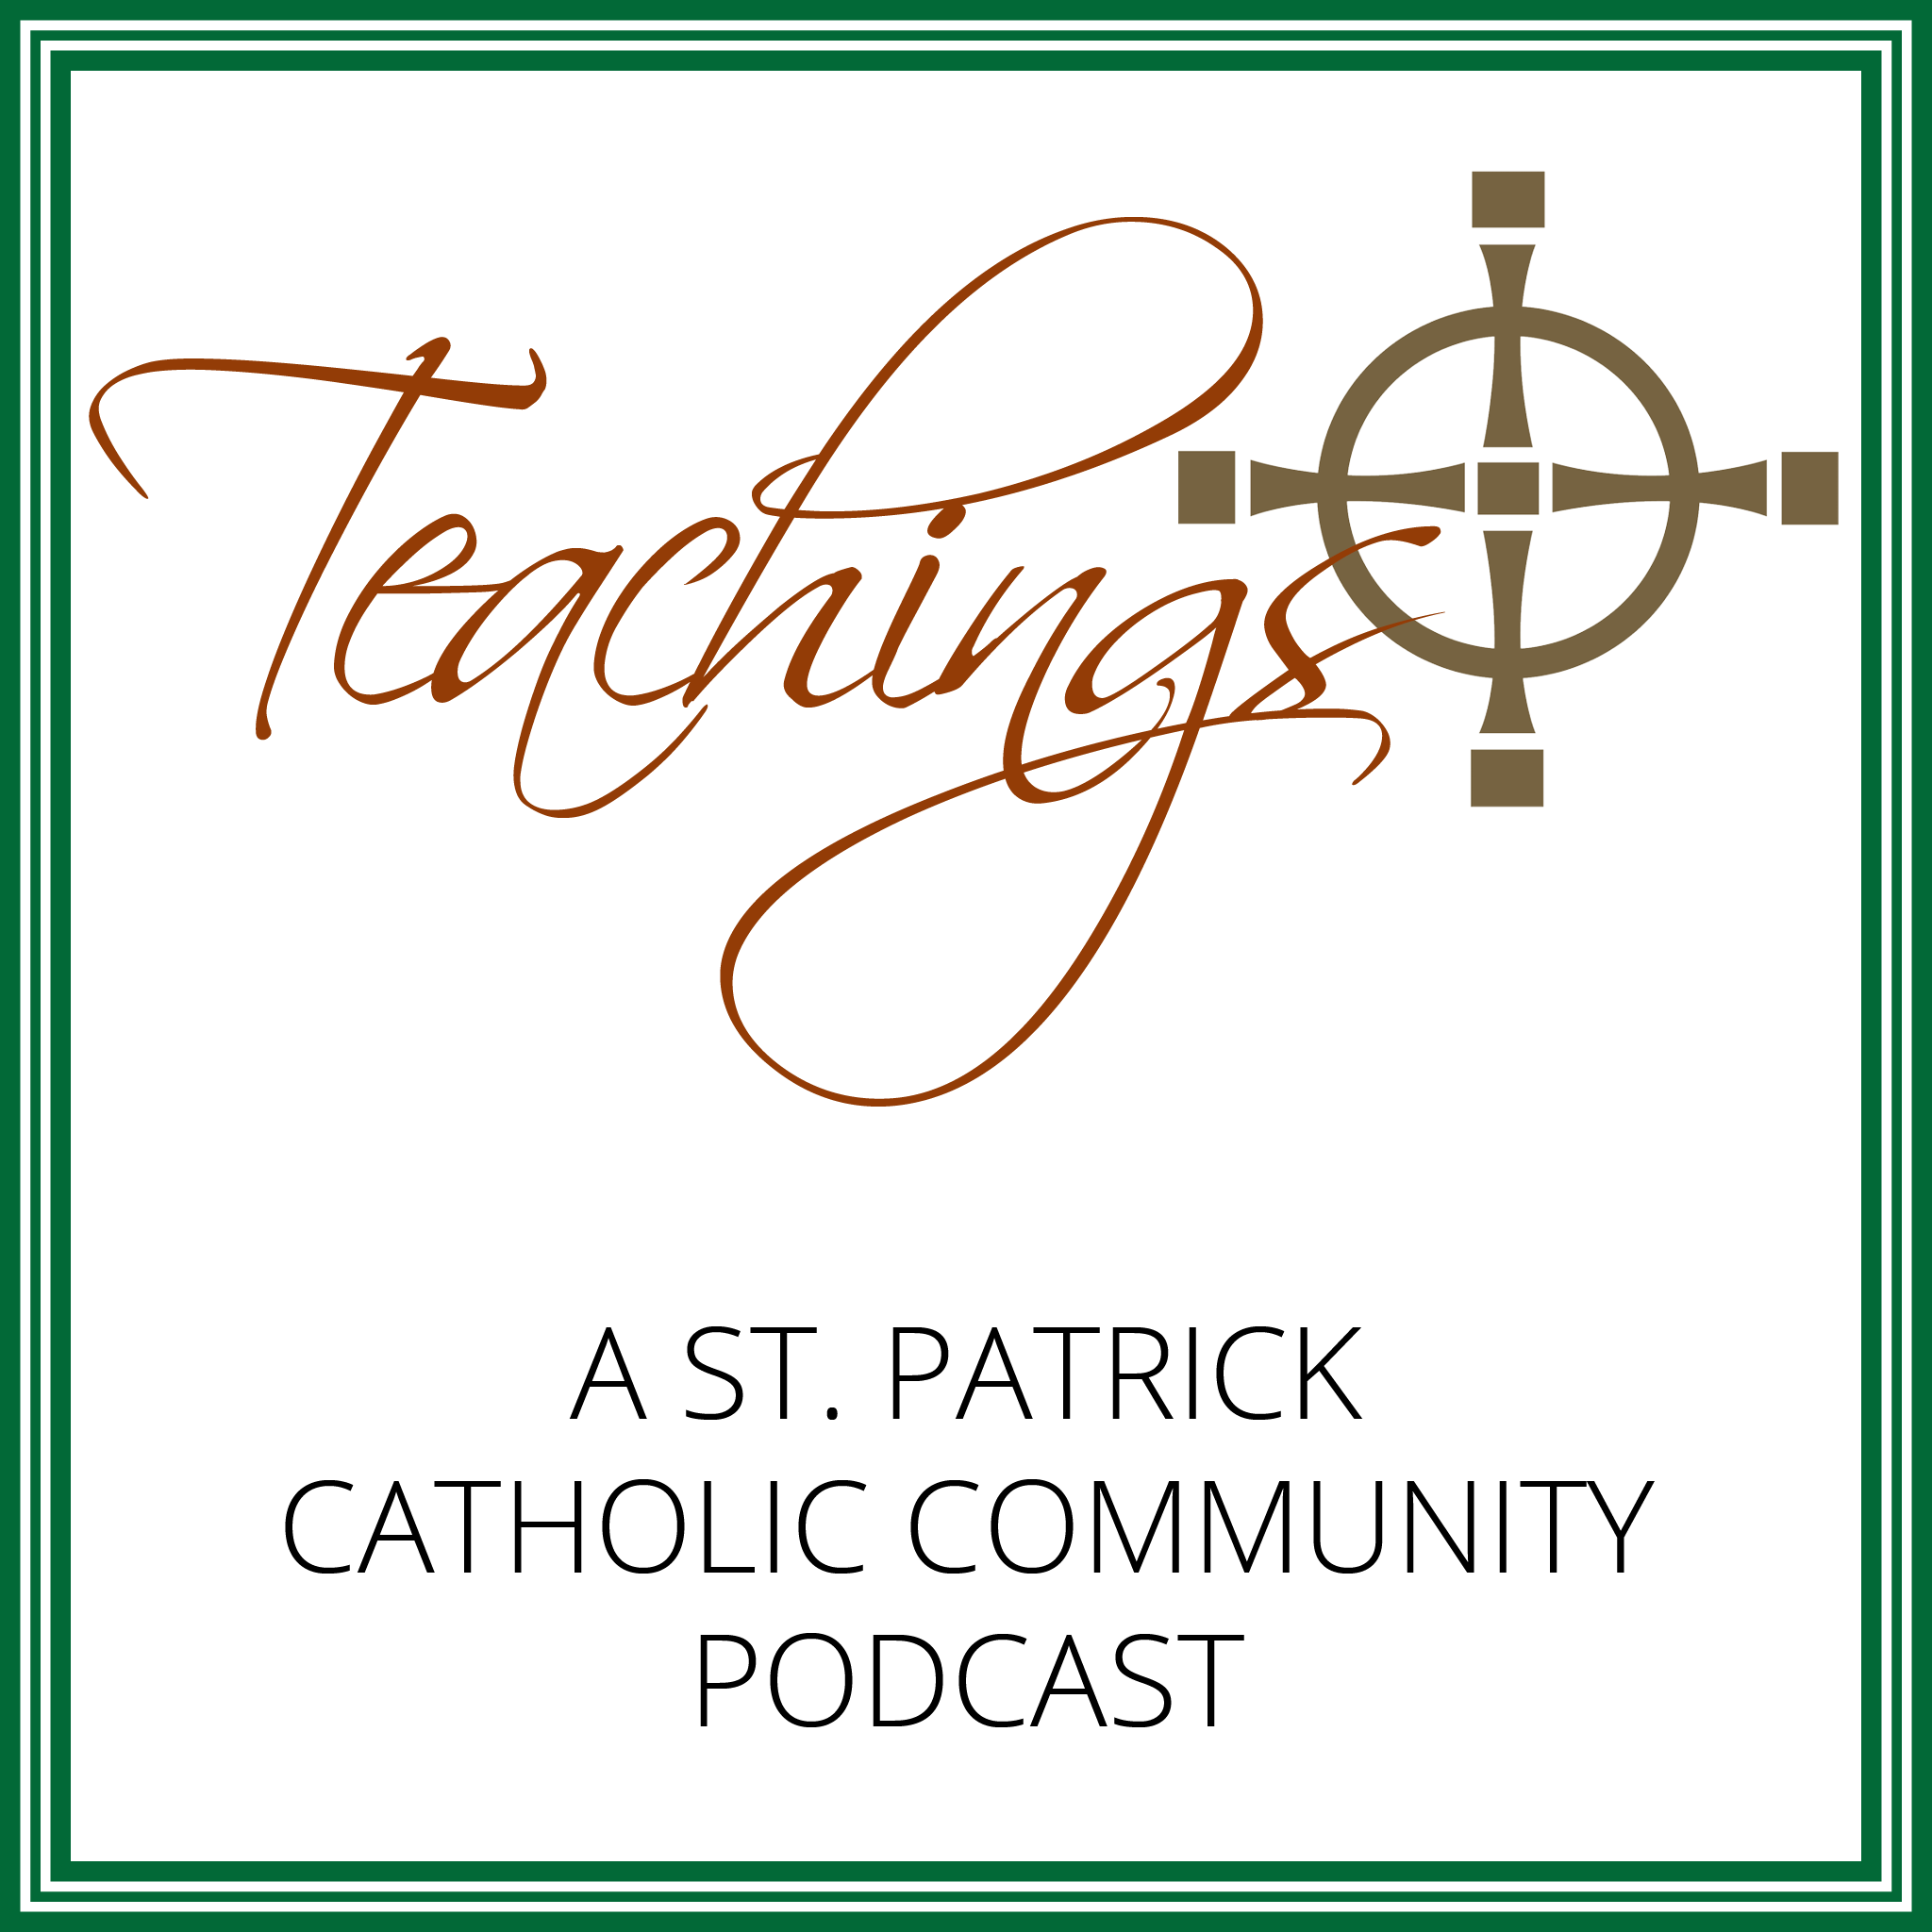 Teachings (a St. Patrick Catholic Community Podcast)